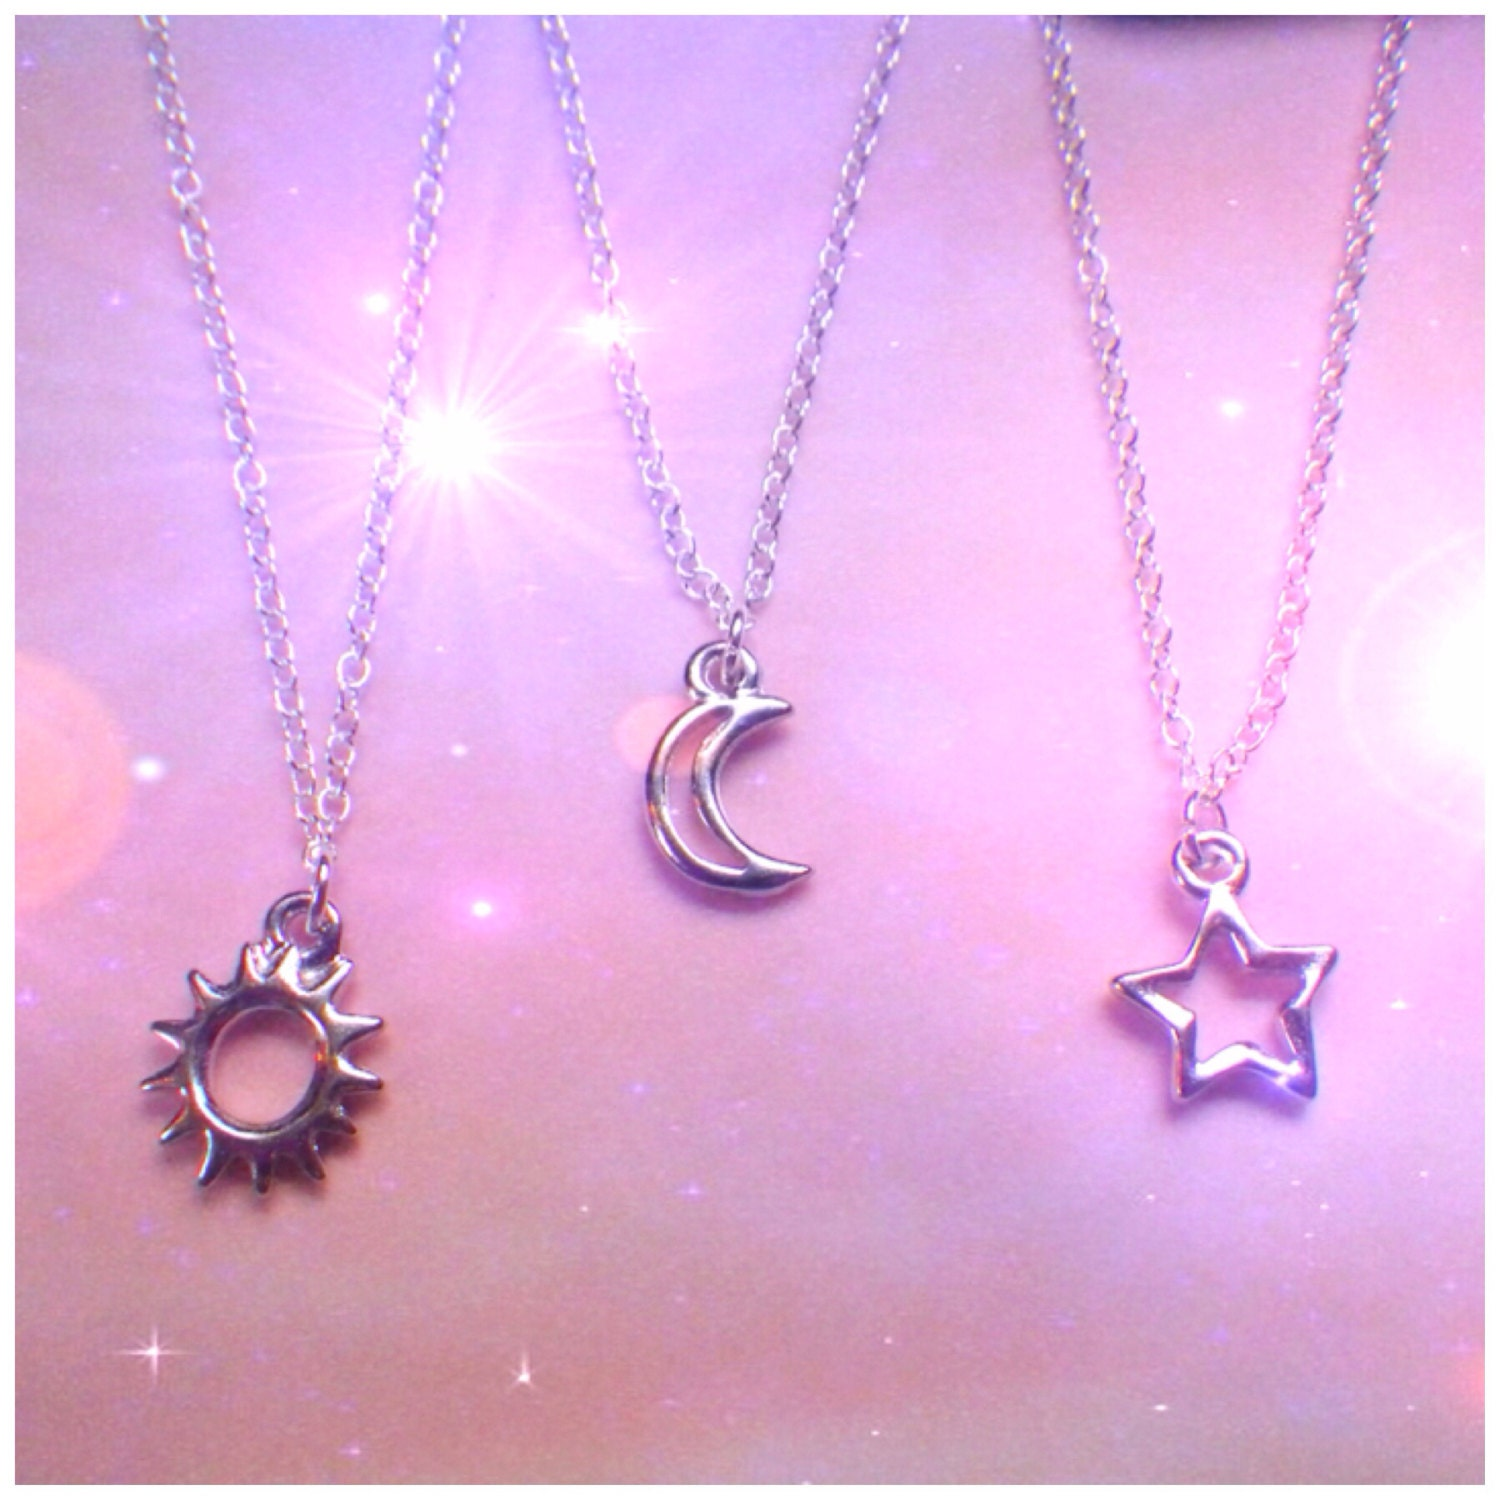 Dainty Silver Sun Moon Or Star Necklace By Lotusfairy On Etsy